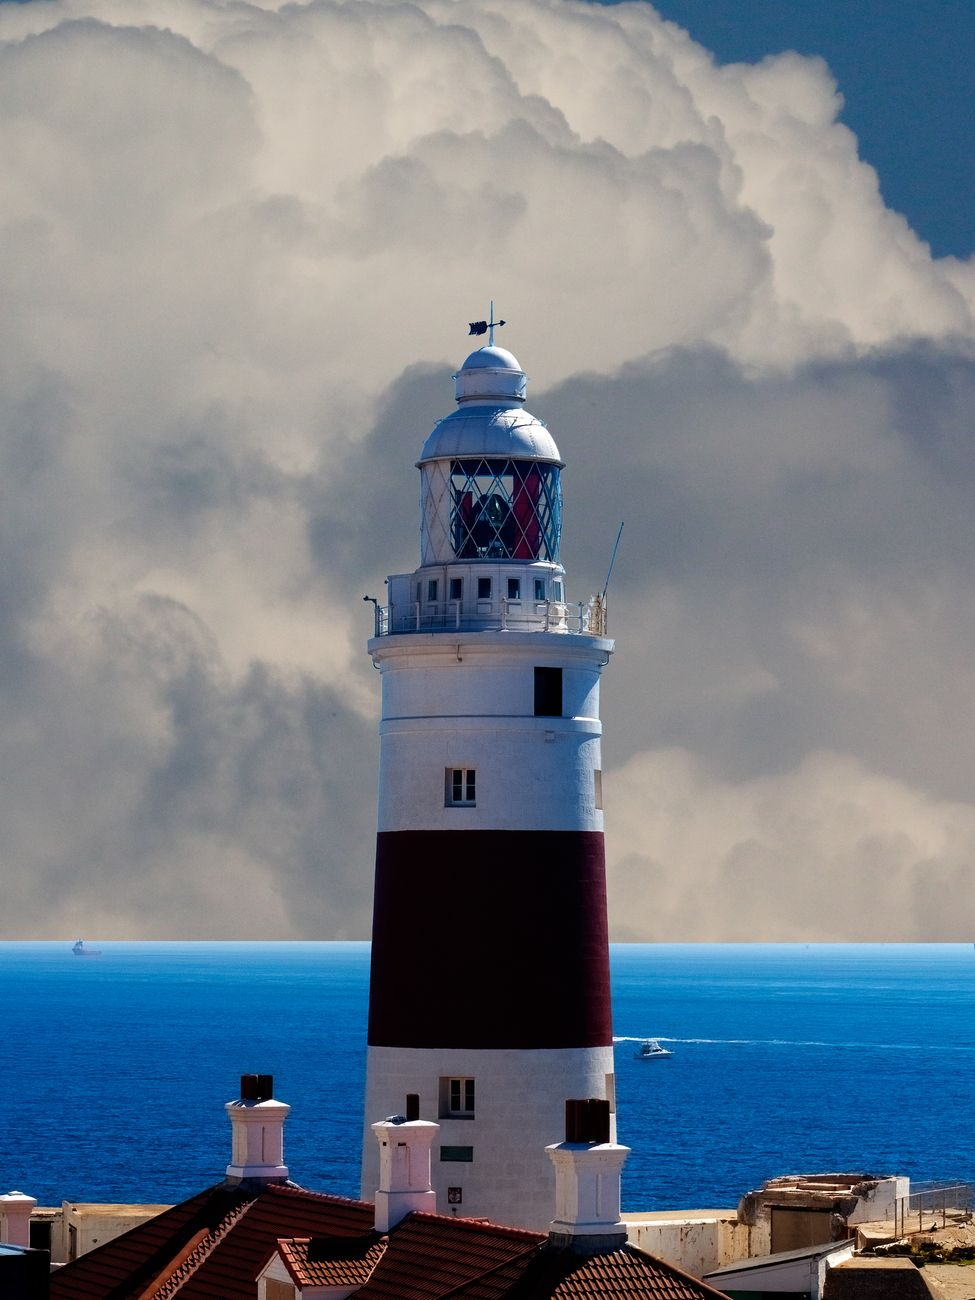 Morning view of the lighthouse in Gibraltar, with the Mediterranean Sea in the background.